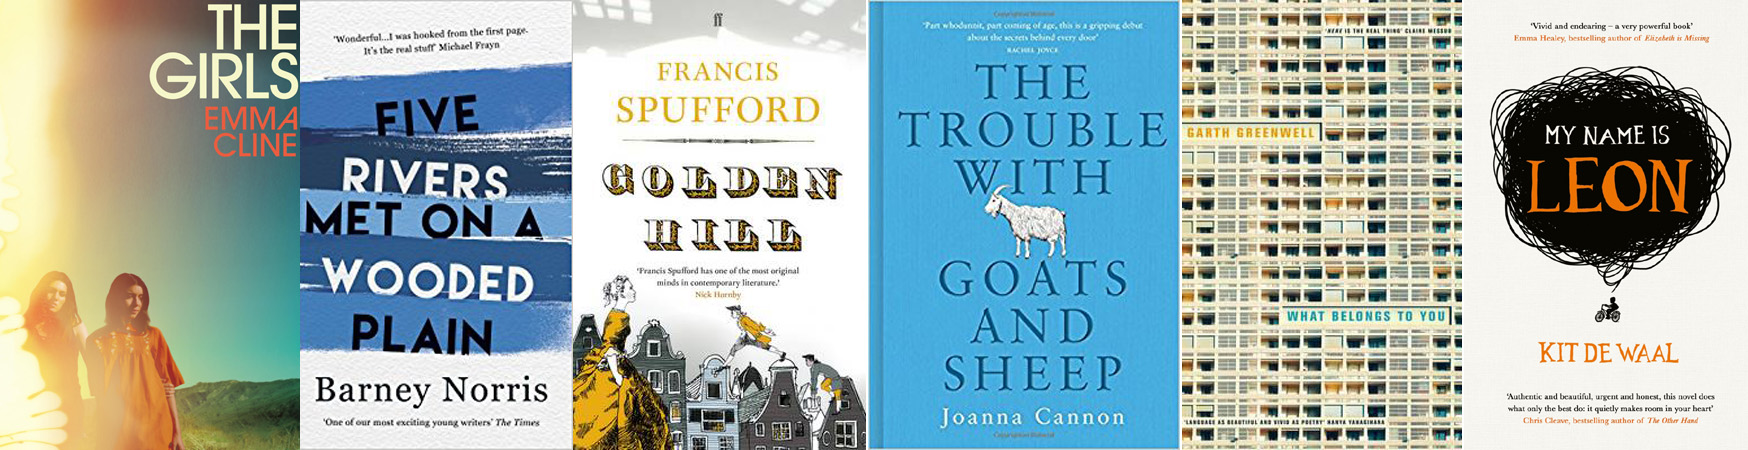 The British Book Awards / Nibbies 2017 Debut Fiction Book of the Year Shortlist